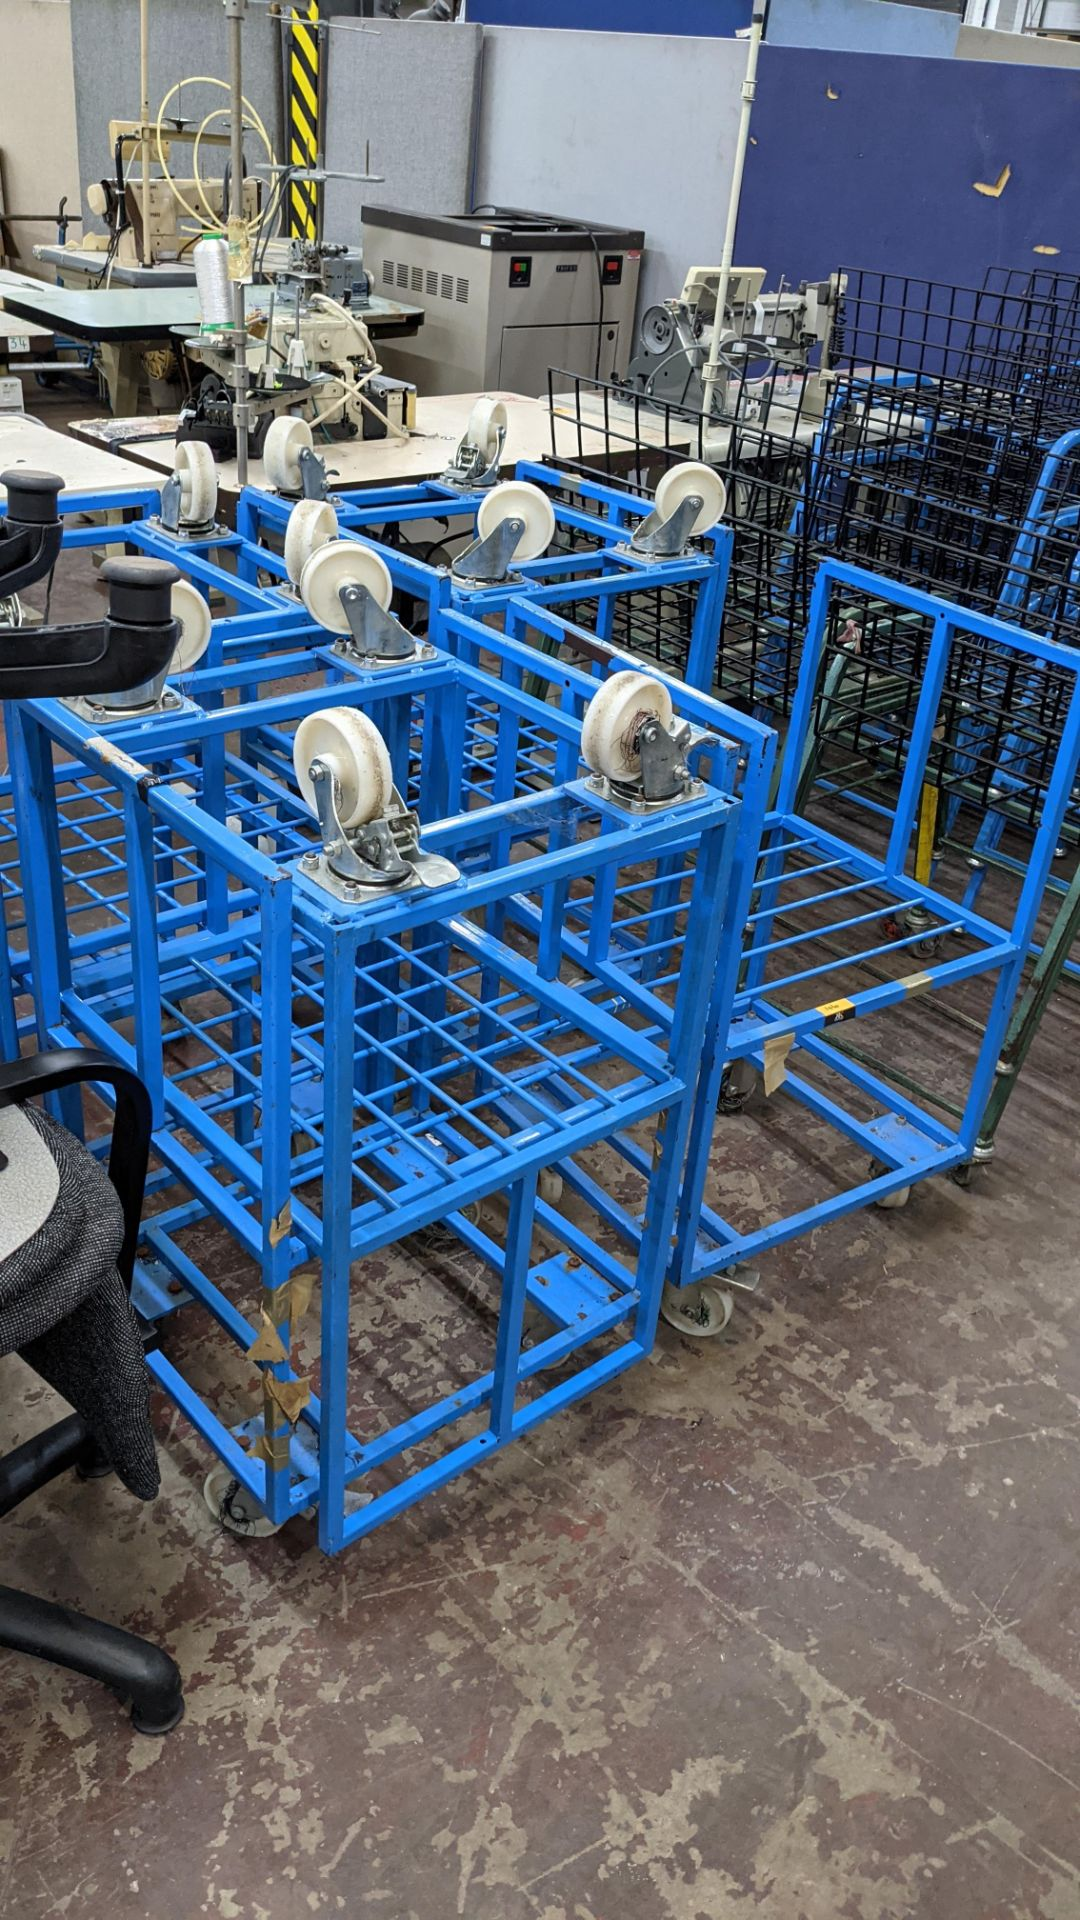 7 off blue mobile trollies - Image 4 of 6